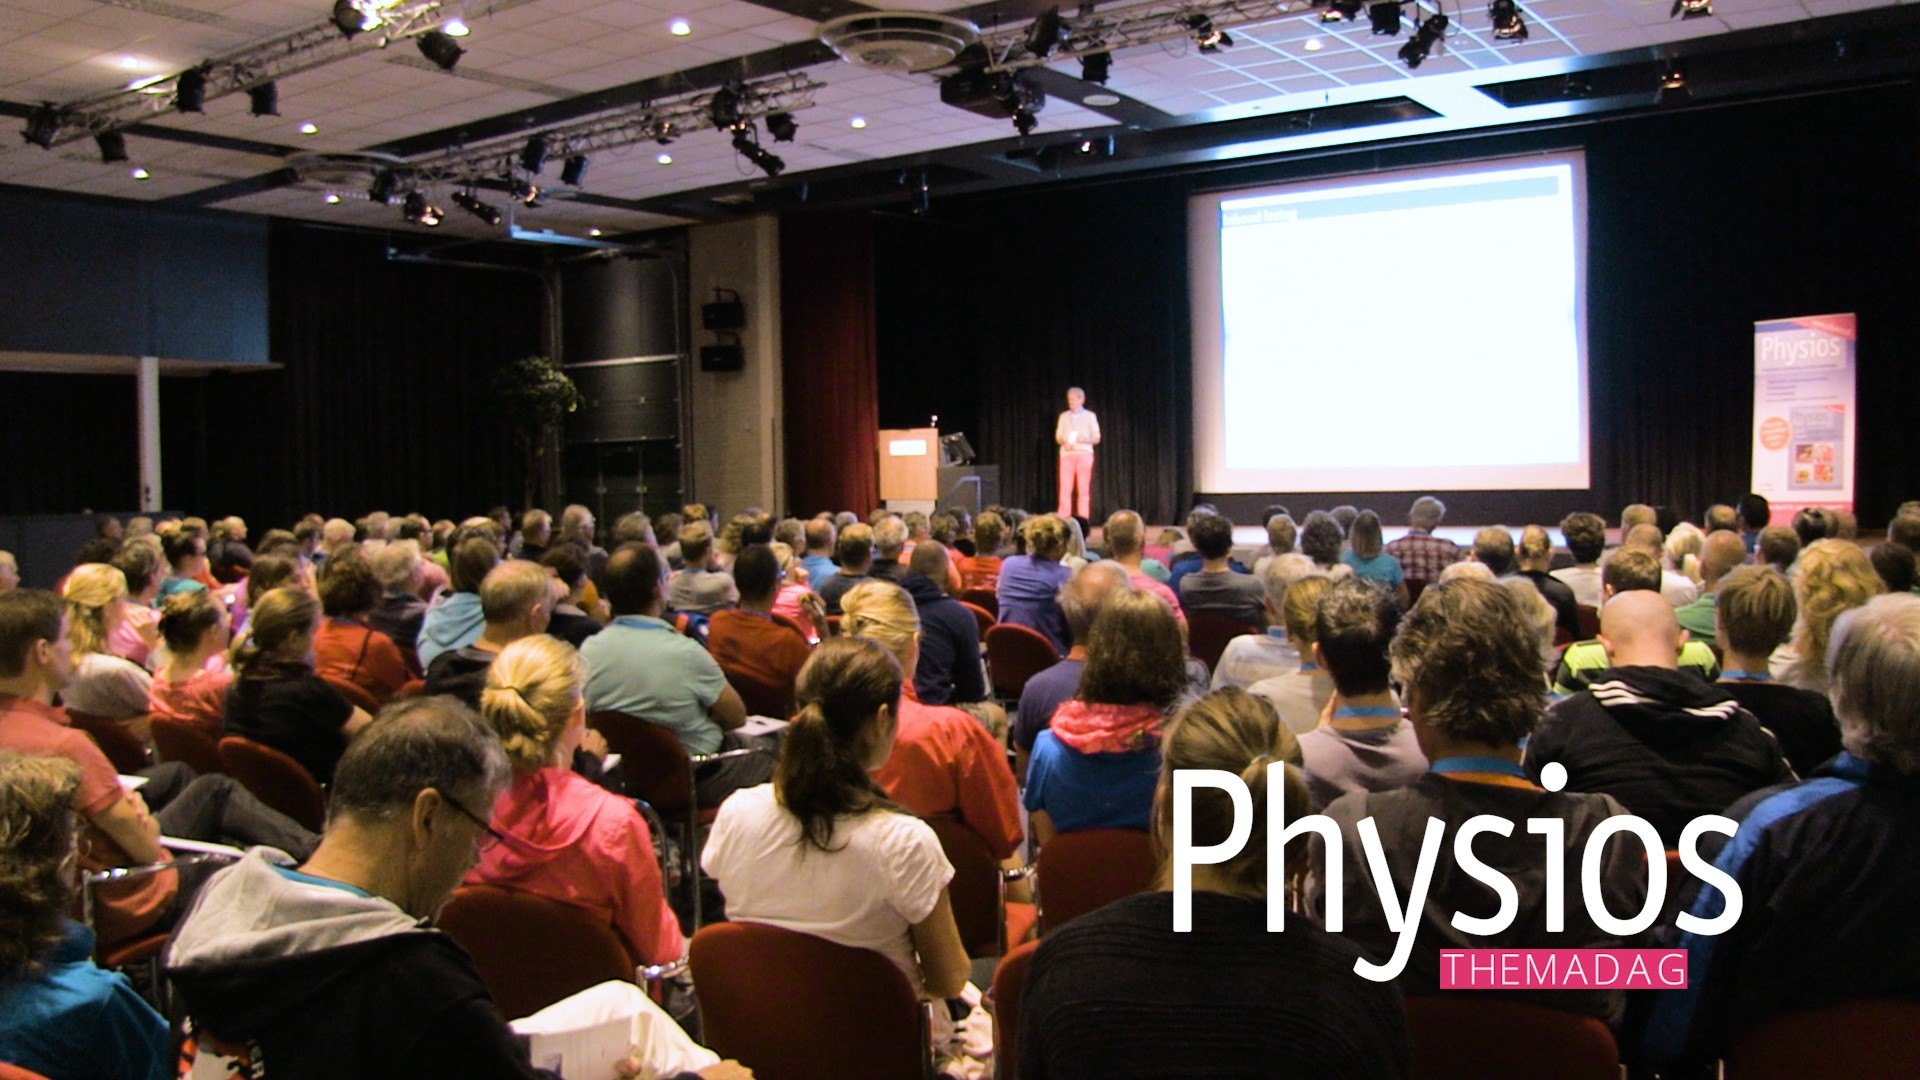 Physios Themadag 2018